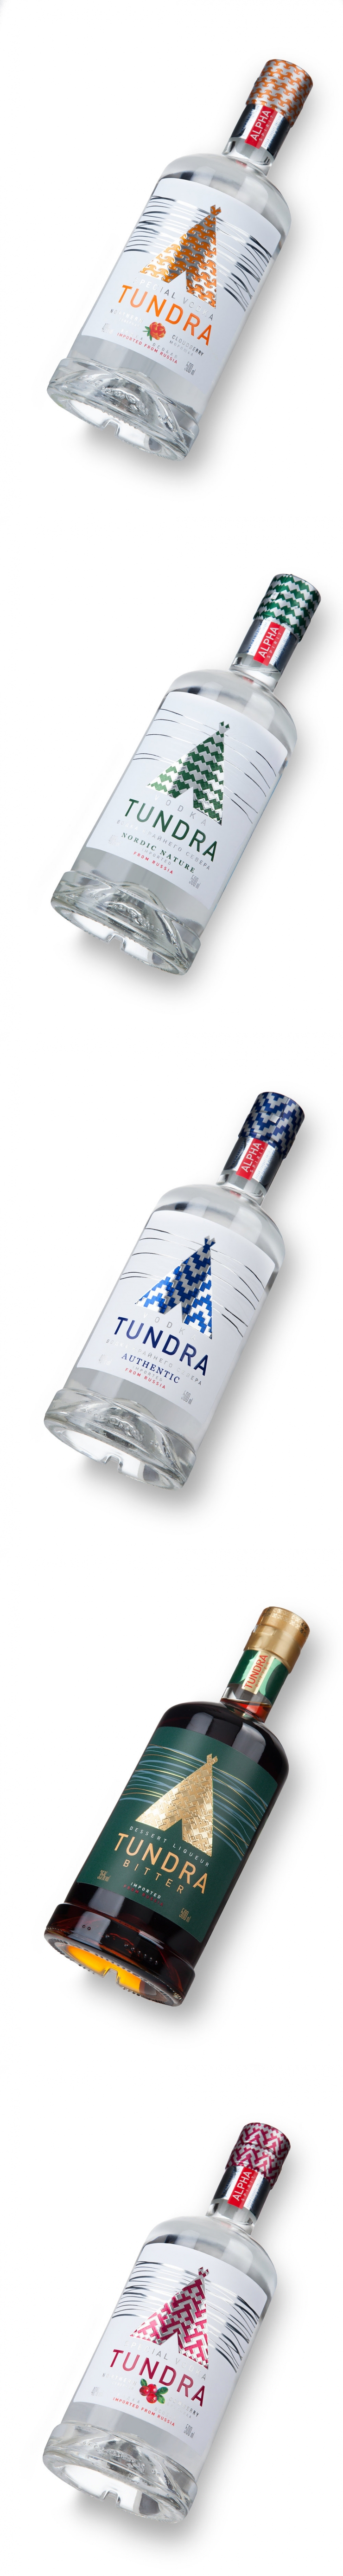 Tundra Vodkas and Bitters — The Dieline - Branding & Packaging Design